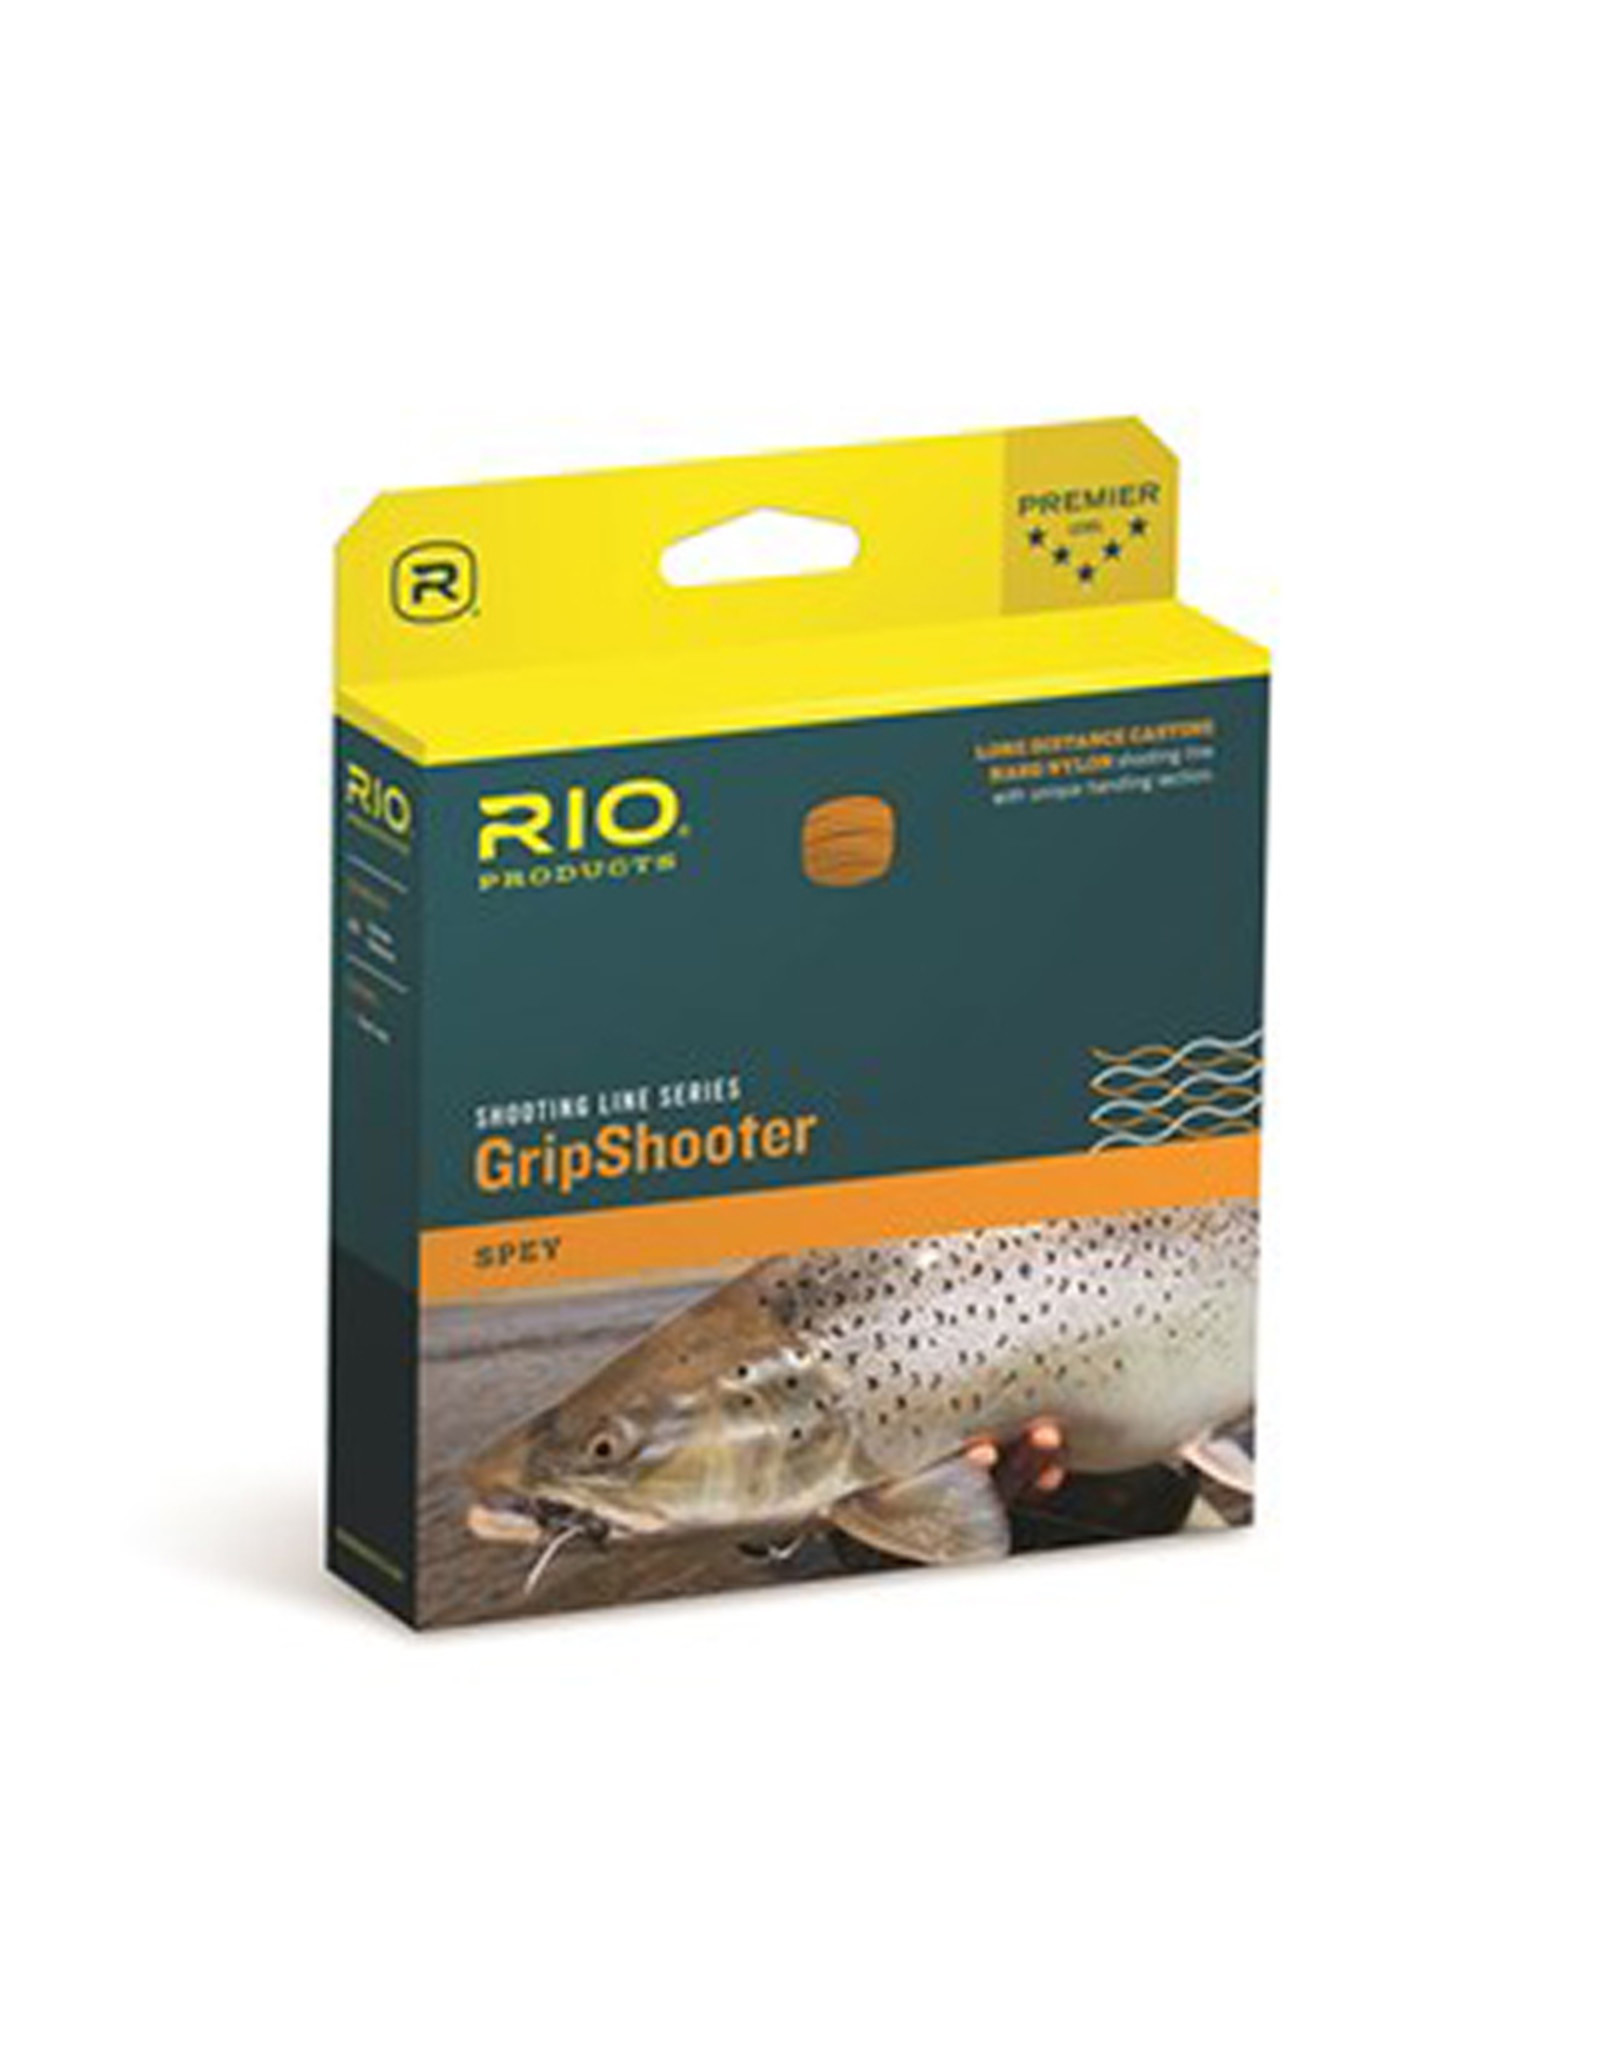 RIO Products GripShooter